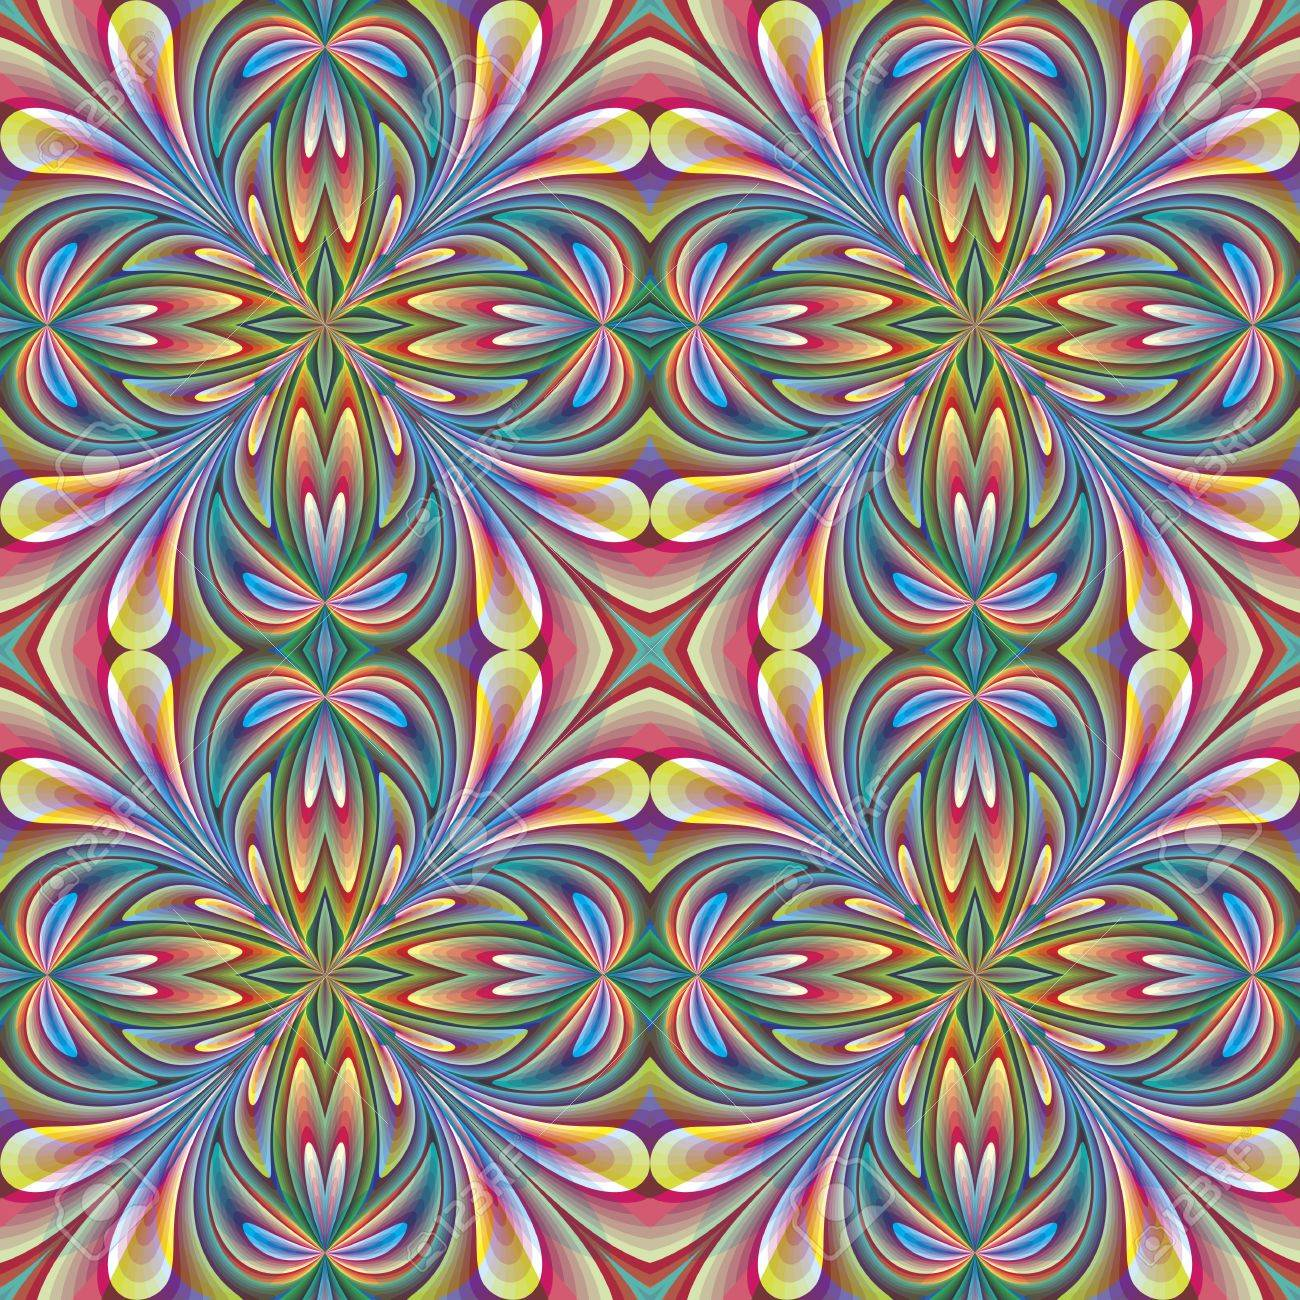 Floral Design In Art Nouveau Style Seamless Pattern With Historic Motifs Vivid Rainbow Colors